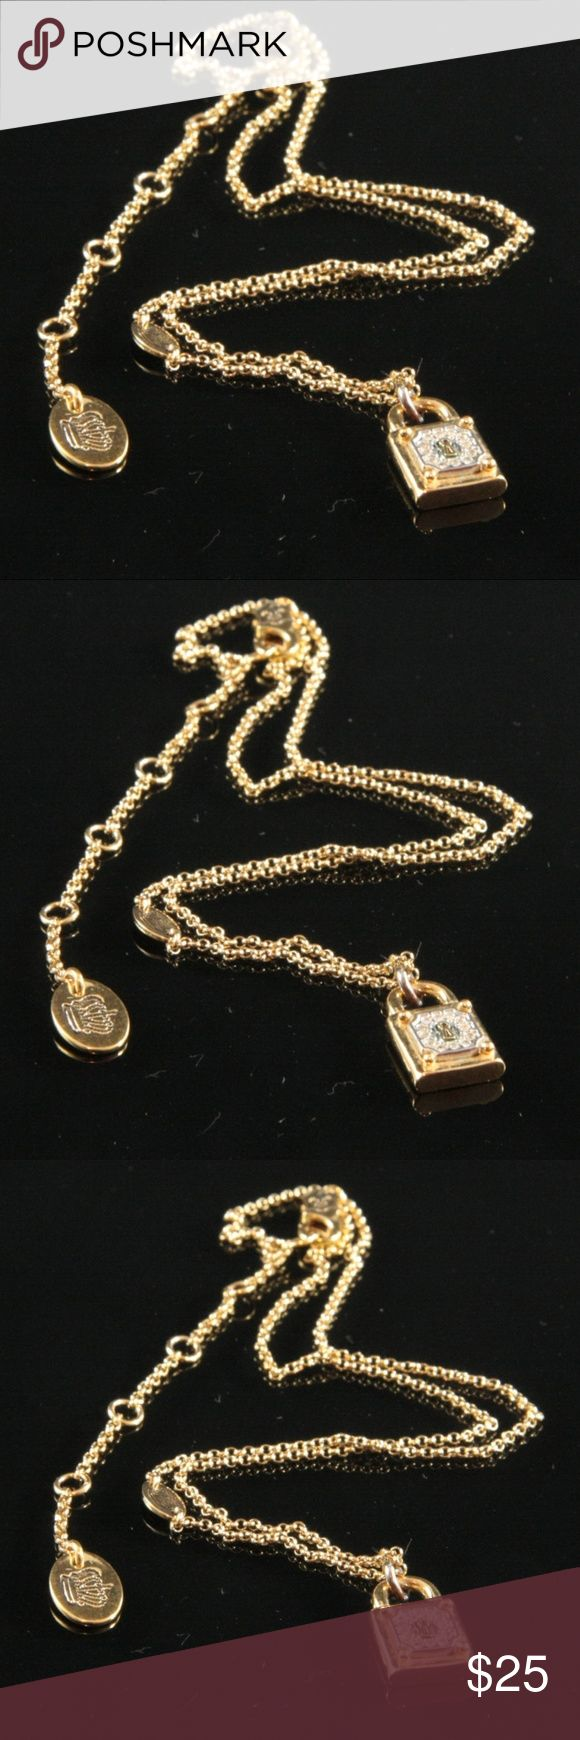 """Juicy Couture Necklace Lock Pendant Gold Tone Juicy Couture Necklace.  Gold tone chain.  Lock pendant inset with tiny brilliant clear rhinestones on front and Juicy Couture insignia on reverse.  Pendant is .6 inches in height, and .4 inches wide.  Chain is 16"""" to 18"""" in length, including 3"""" chain extender.  Classic Juicy Couture clasp and crown charm in chain and at end of chain extender.  Used item: any wear shown in pics. Fair condition, with wear on corners and on the charms. Priced…"""